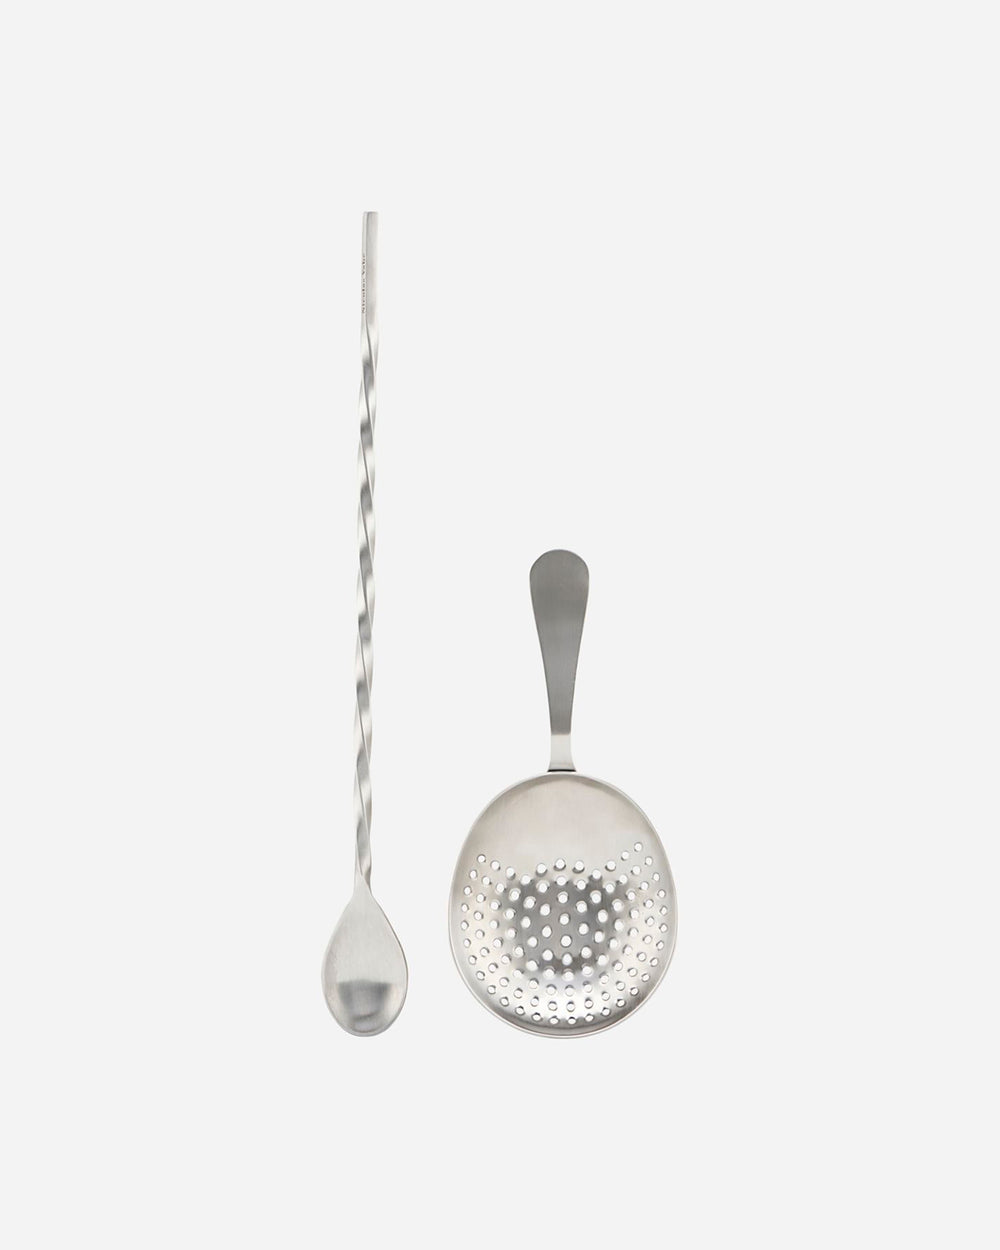 COCKTAIL SPOON AND STRAINER